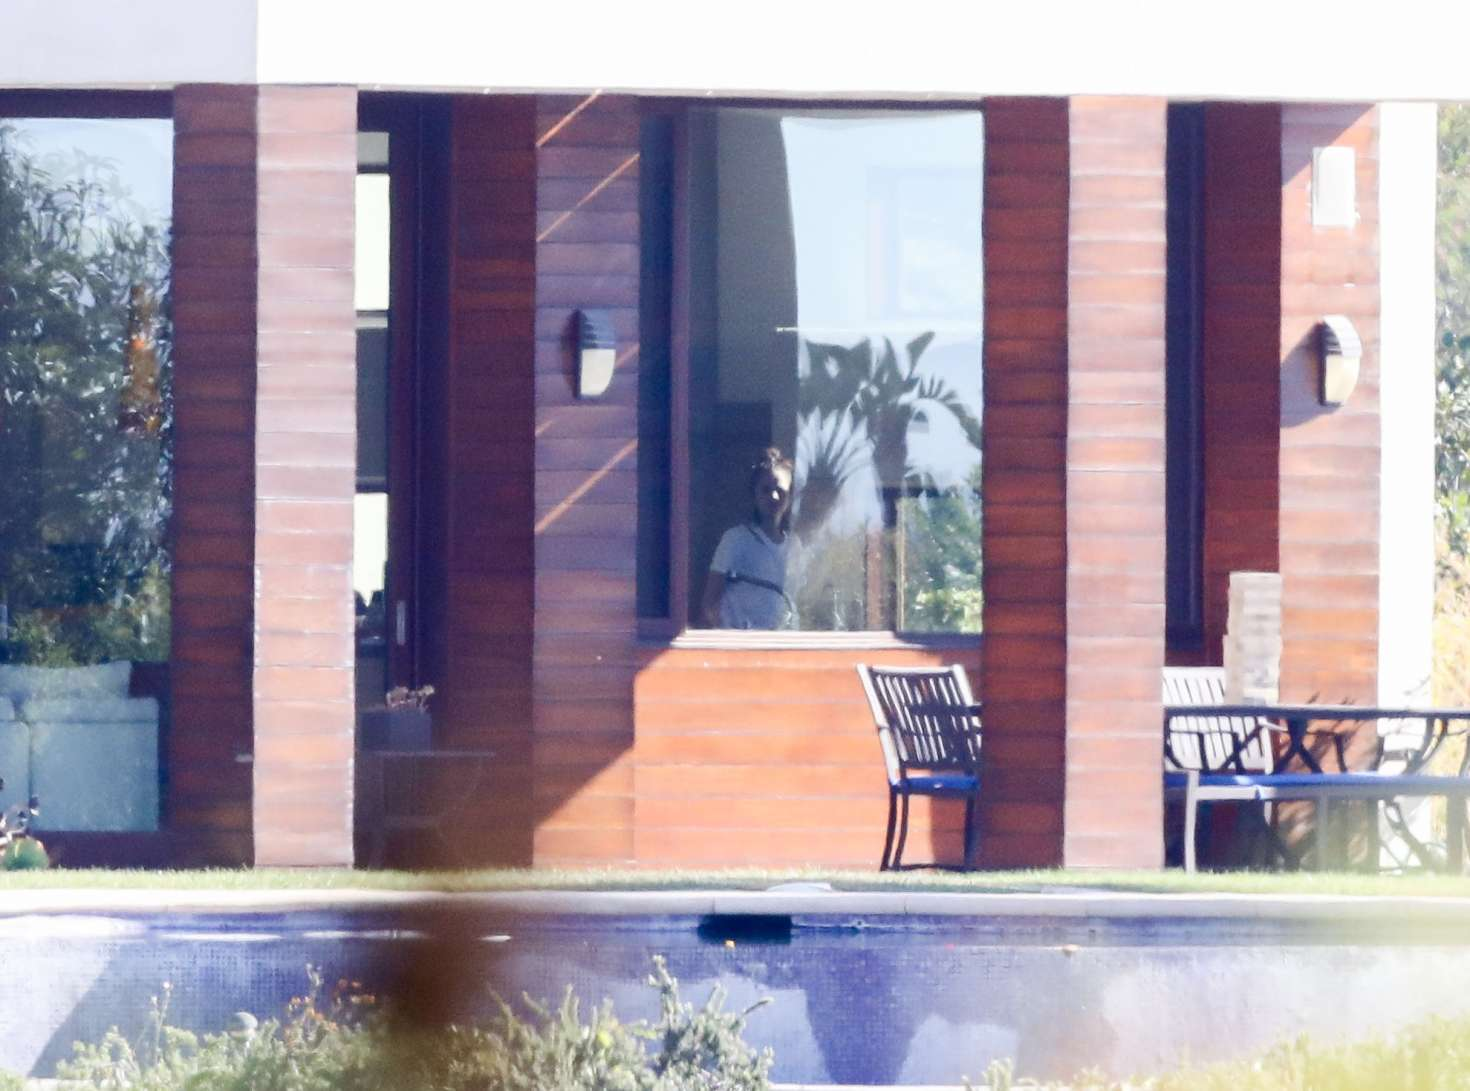 Fullsize Of Justin Bieber House